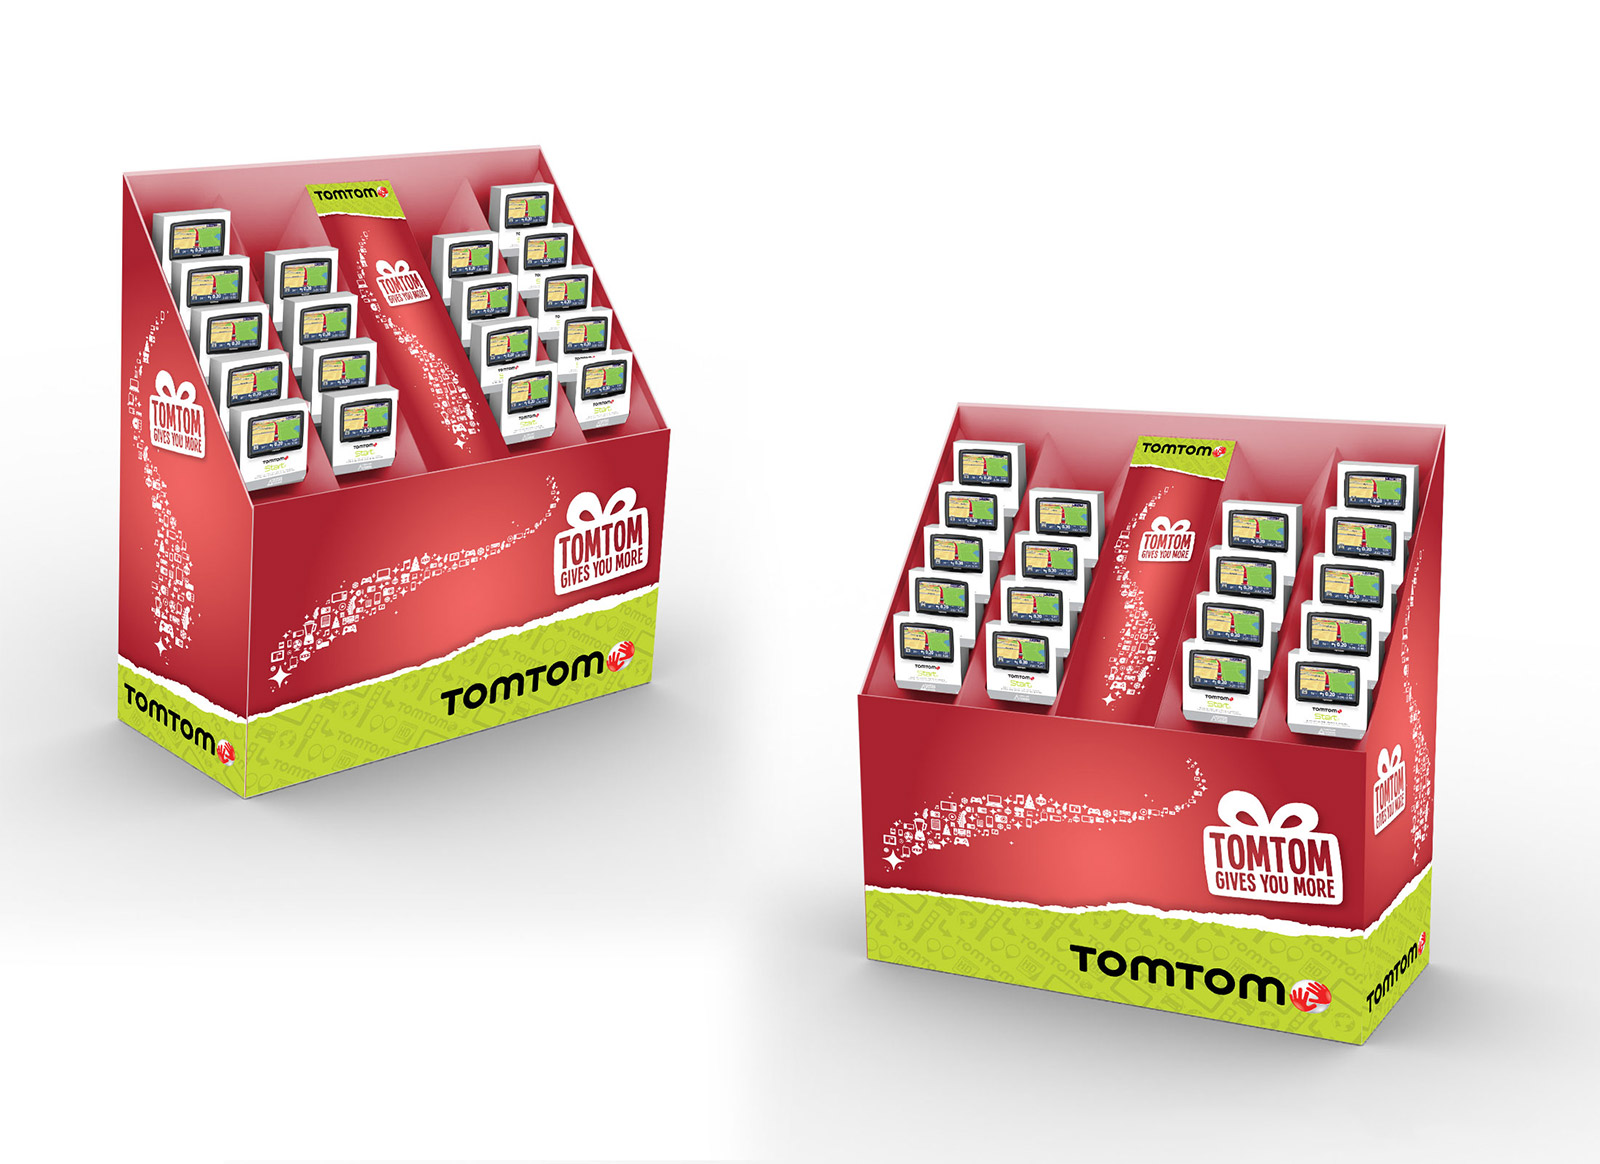 TomTom holiday display stand for Wallmart and Best Buy